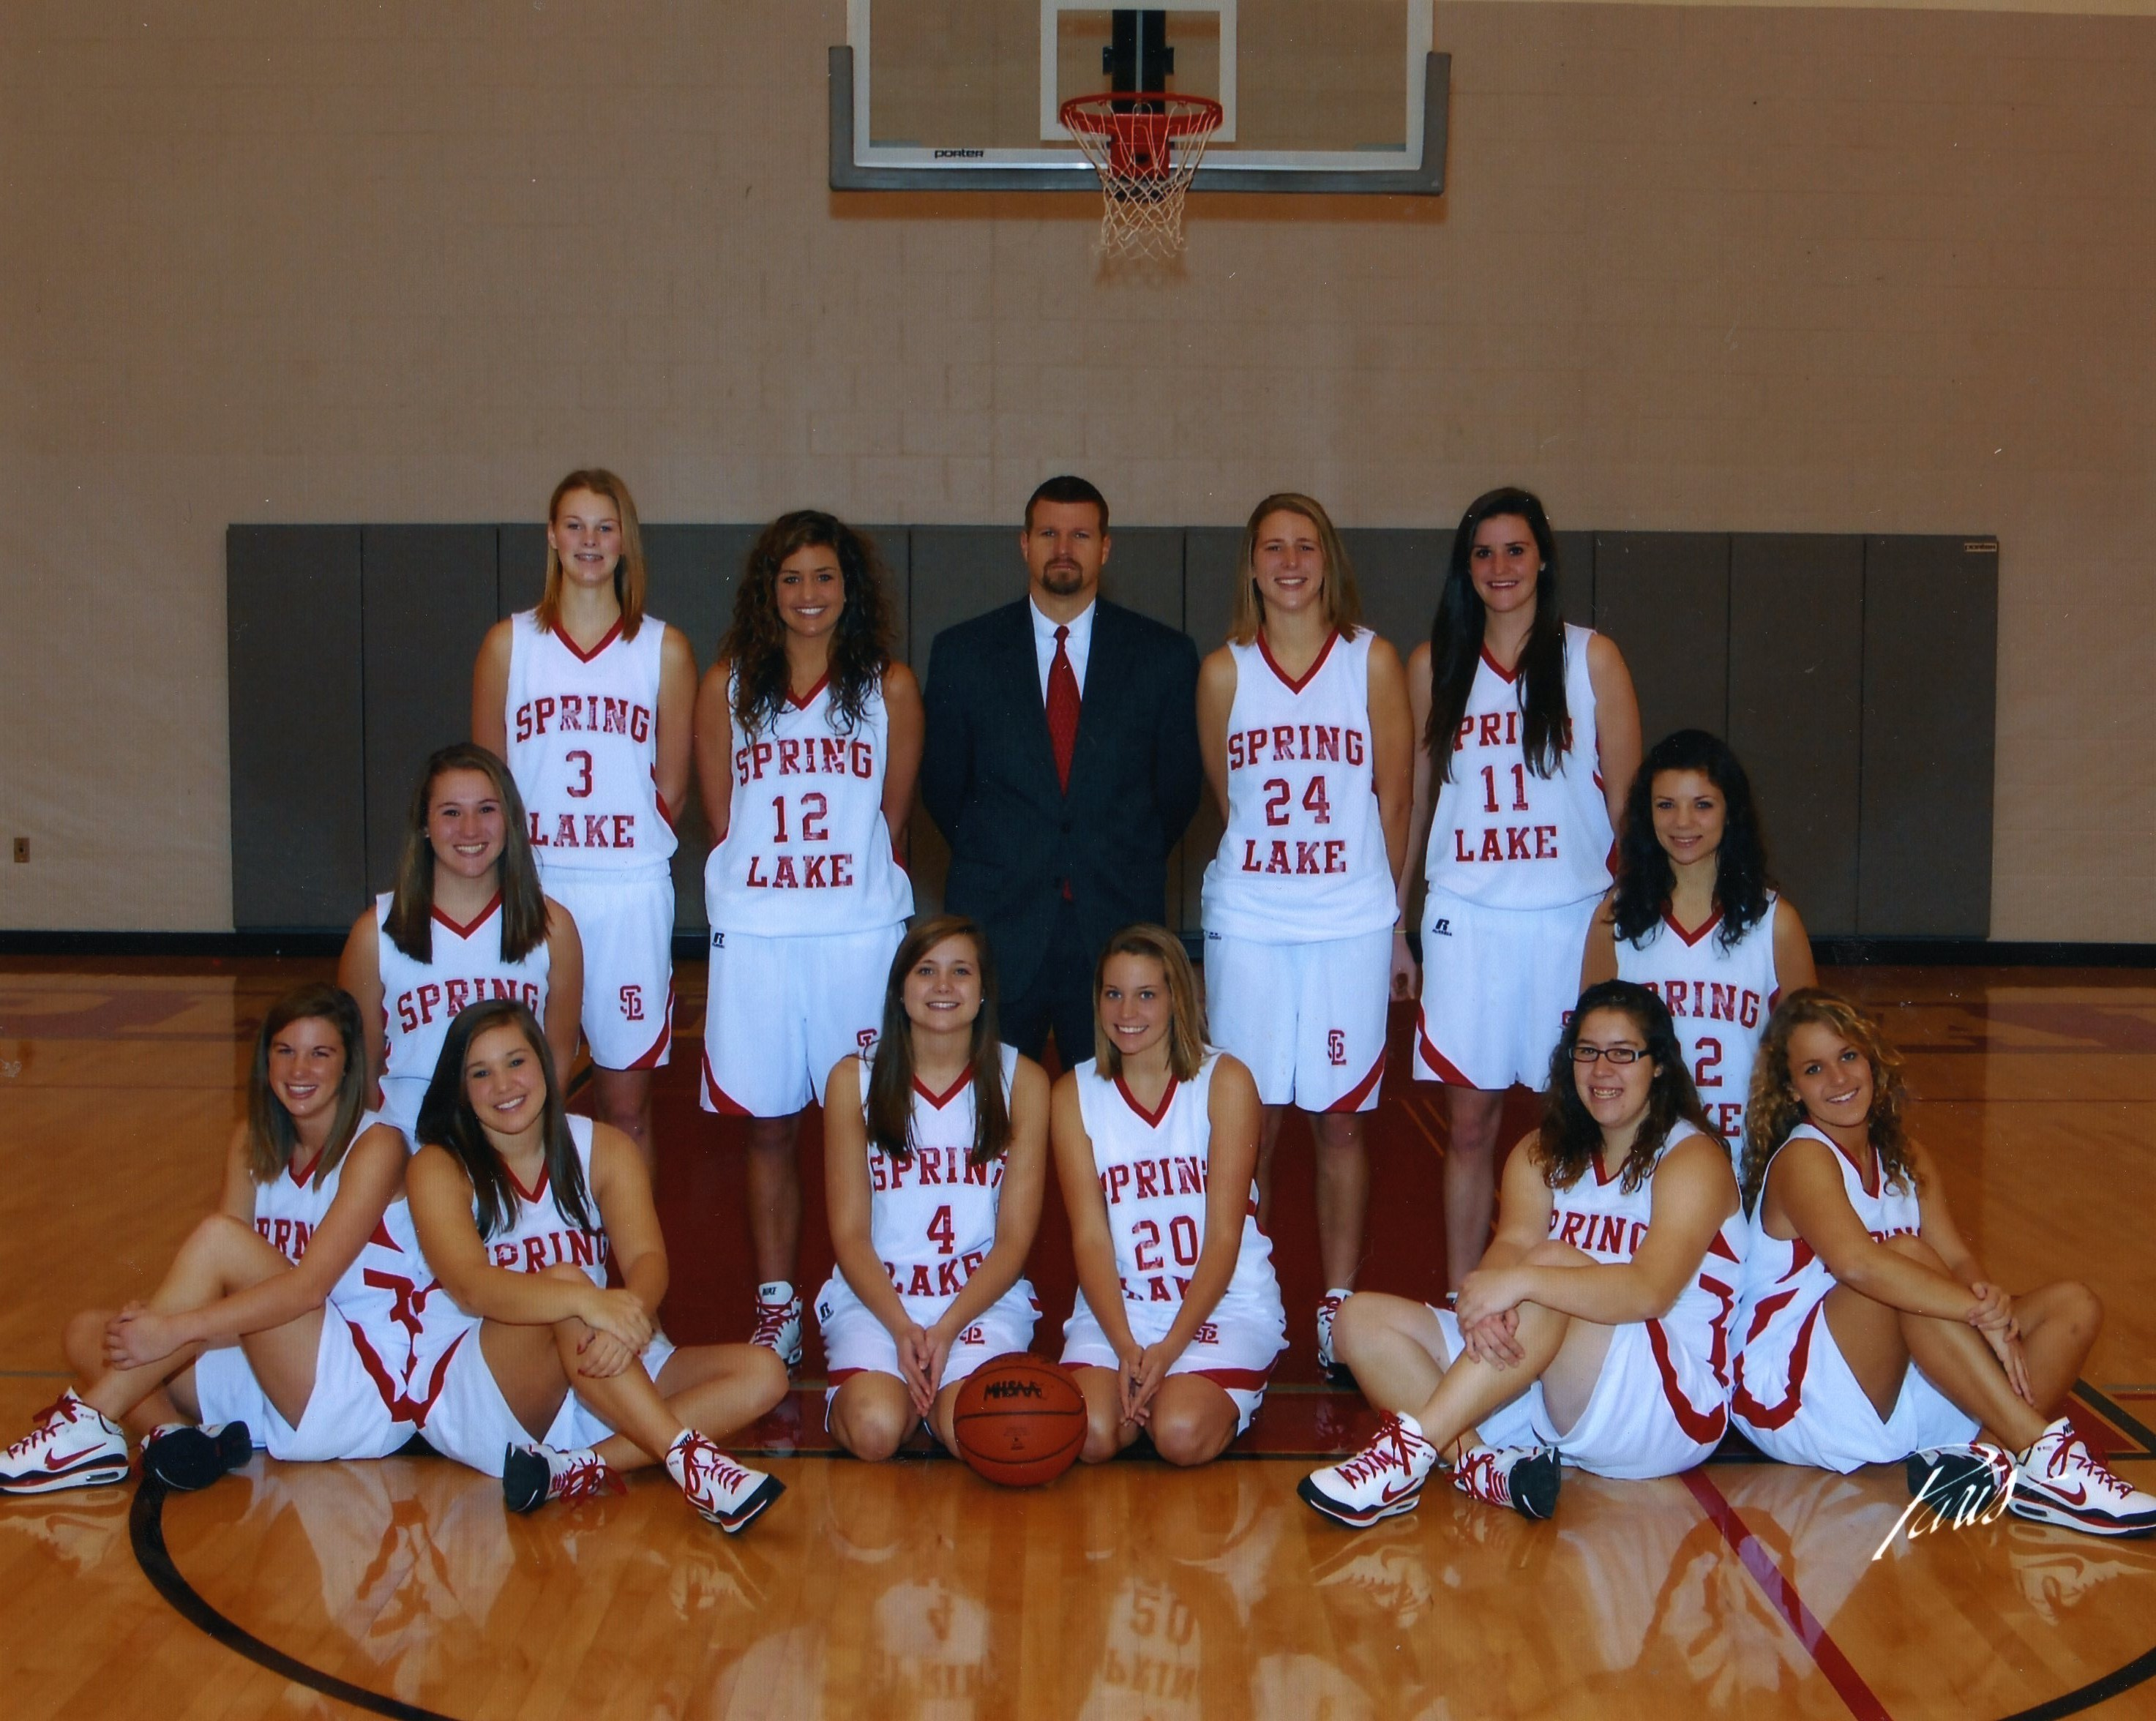 Girls Basketball Spring Lake